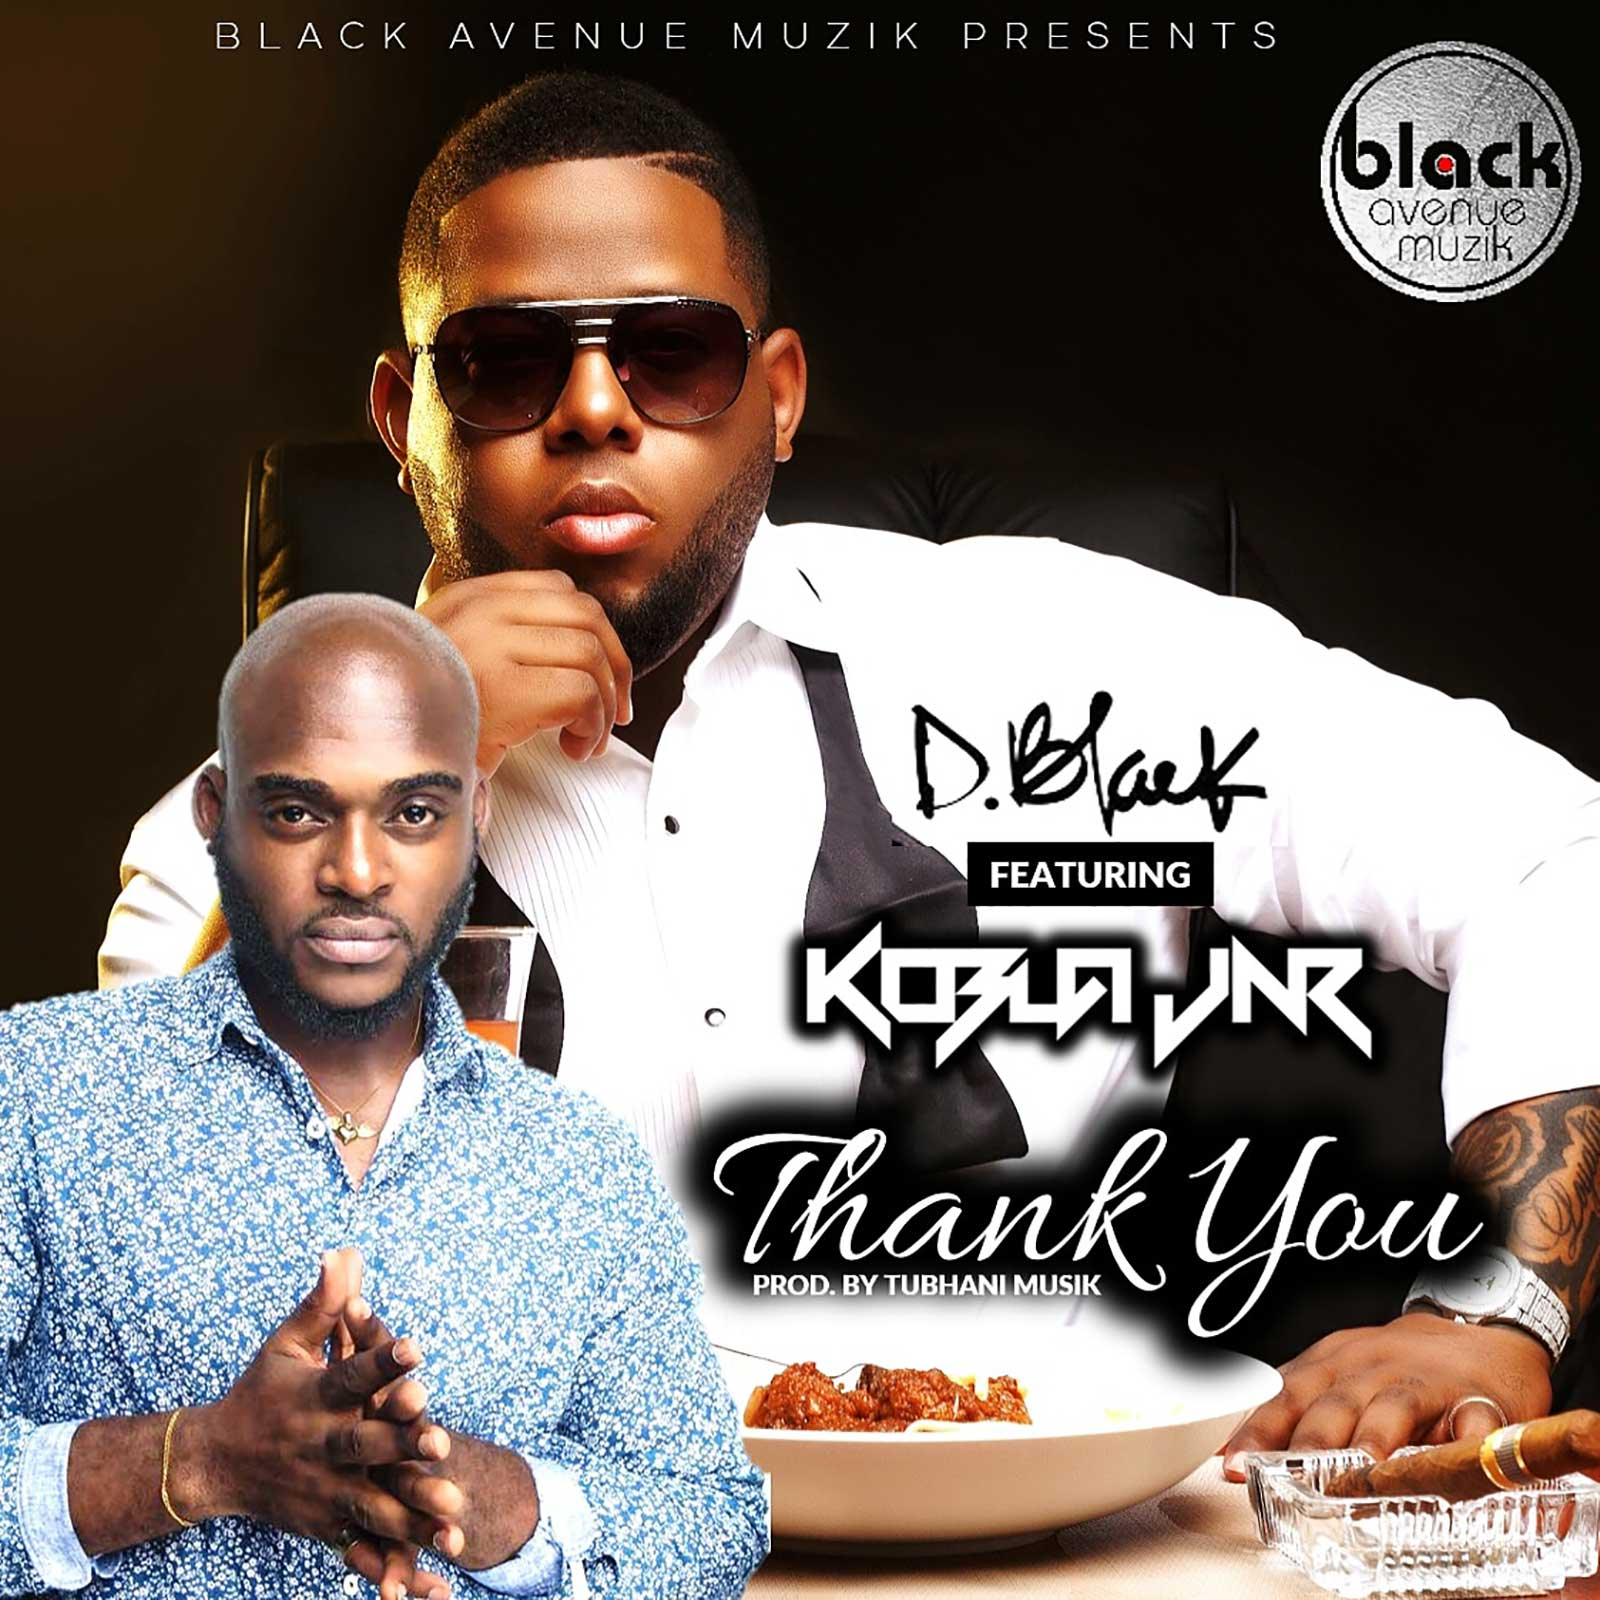 Thank You by D-Black feat. Kobla Jnr